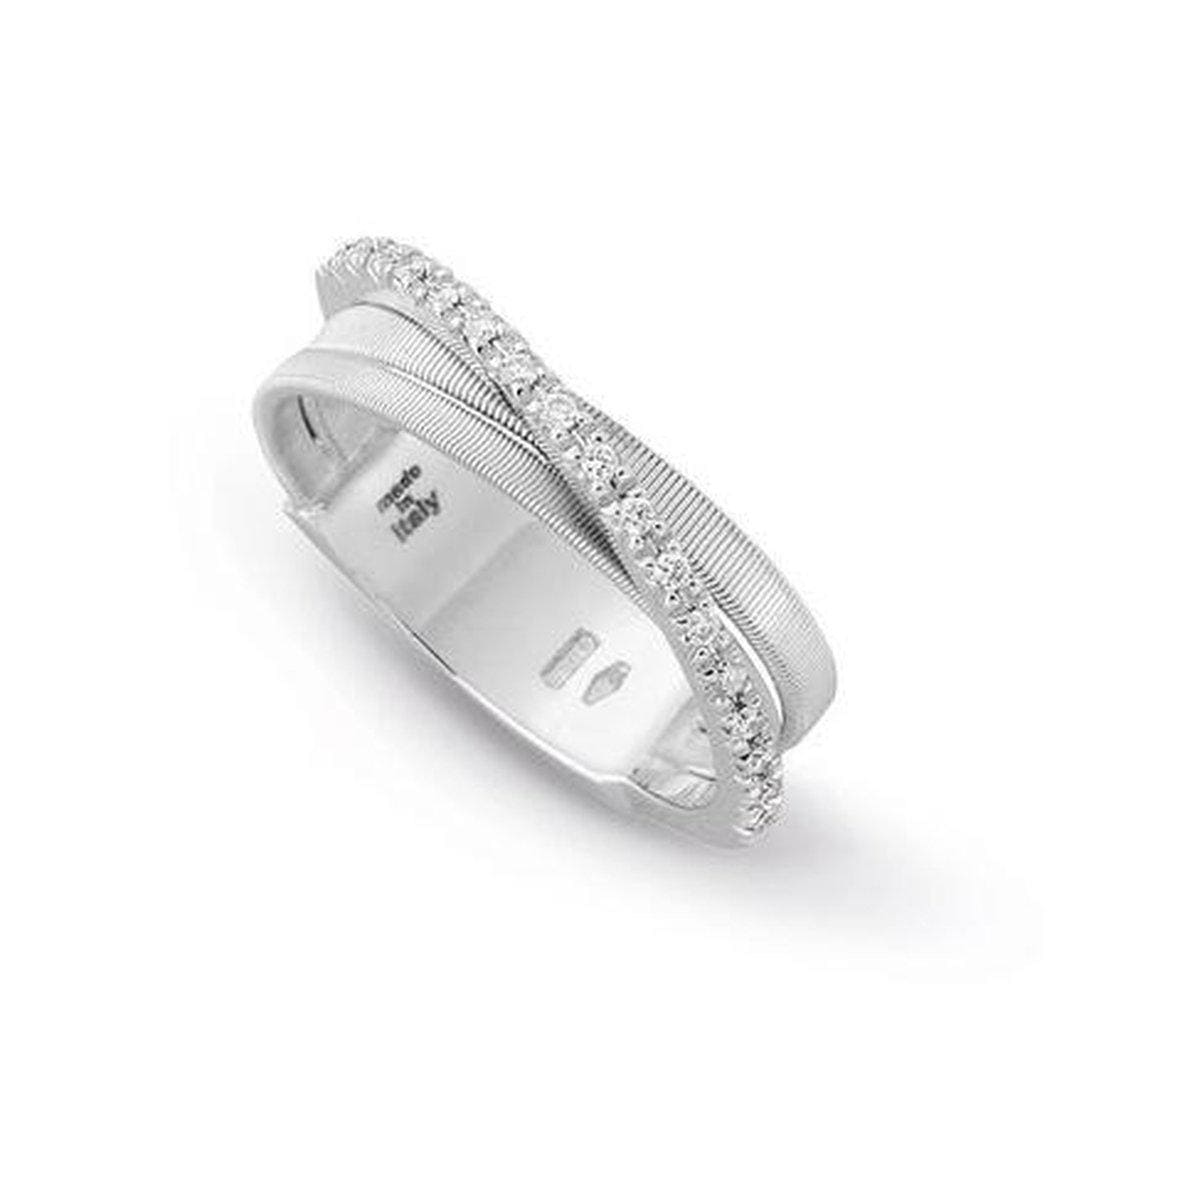 18K Goa 3 Row Diamond Ring - AG314 B W